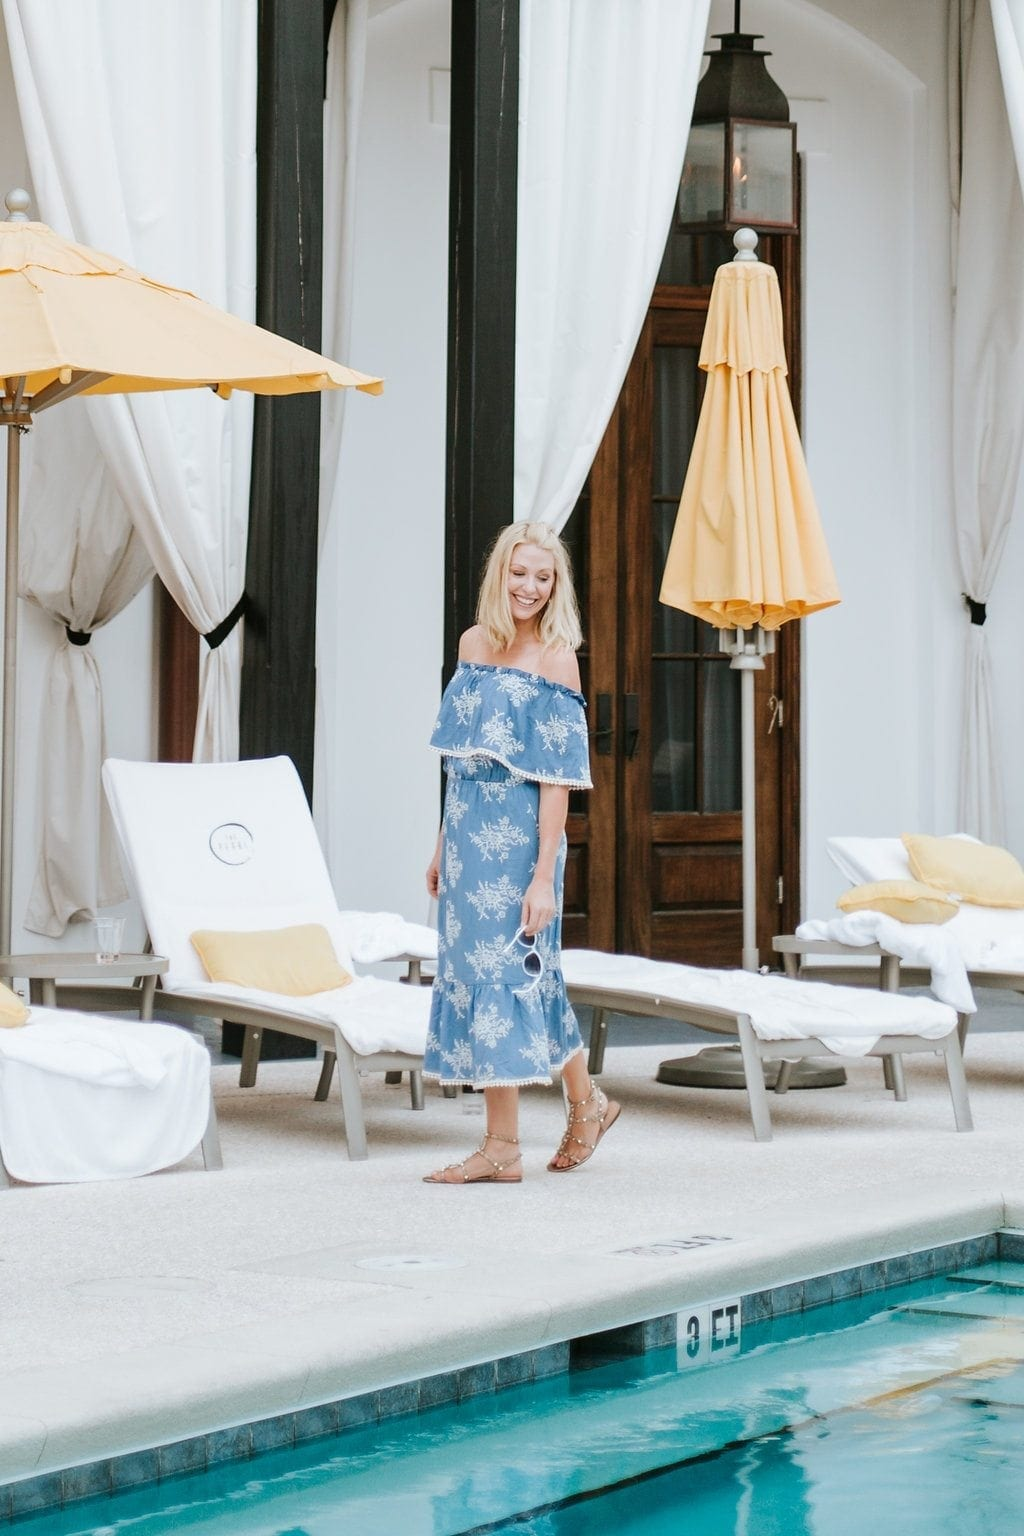 Rosemary Beach pool and Kelly Page in blue midi dress.